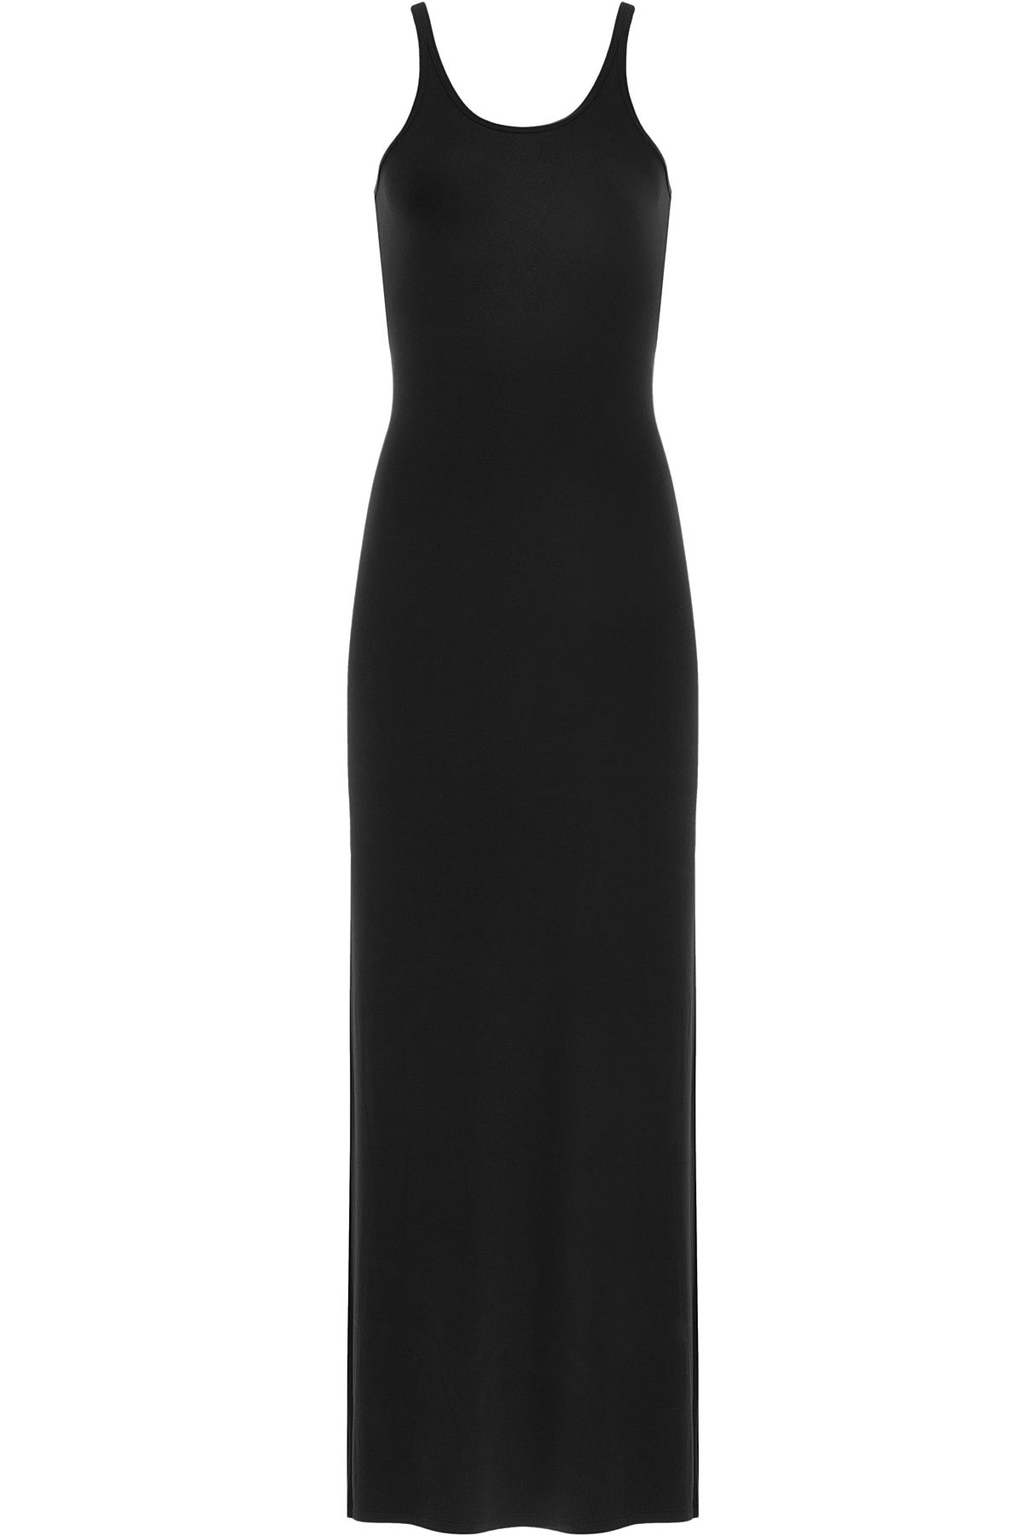 Tank Jersey Maxi Dress Black - pattern: plain; sleeve style: sleeveless; style: maxi dress; length: ankle length; predominant colour: black; fit: body skimming; neckline: scoop; fibres: viscose/rayon - stretch; sleeve length: sleeveless; occasions: holiday; pattern type: fabric; texture group: jersey - stretchy/drapey; season: s/s 2016; wardrobe: holiday